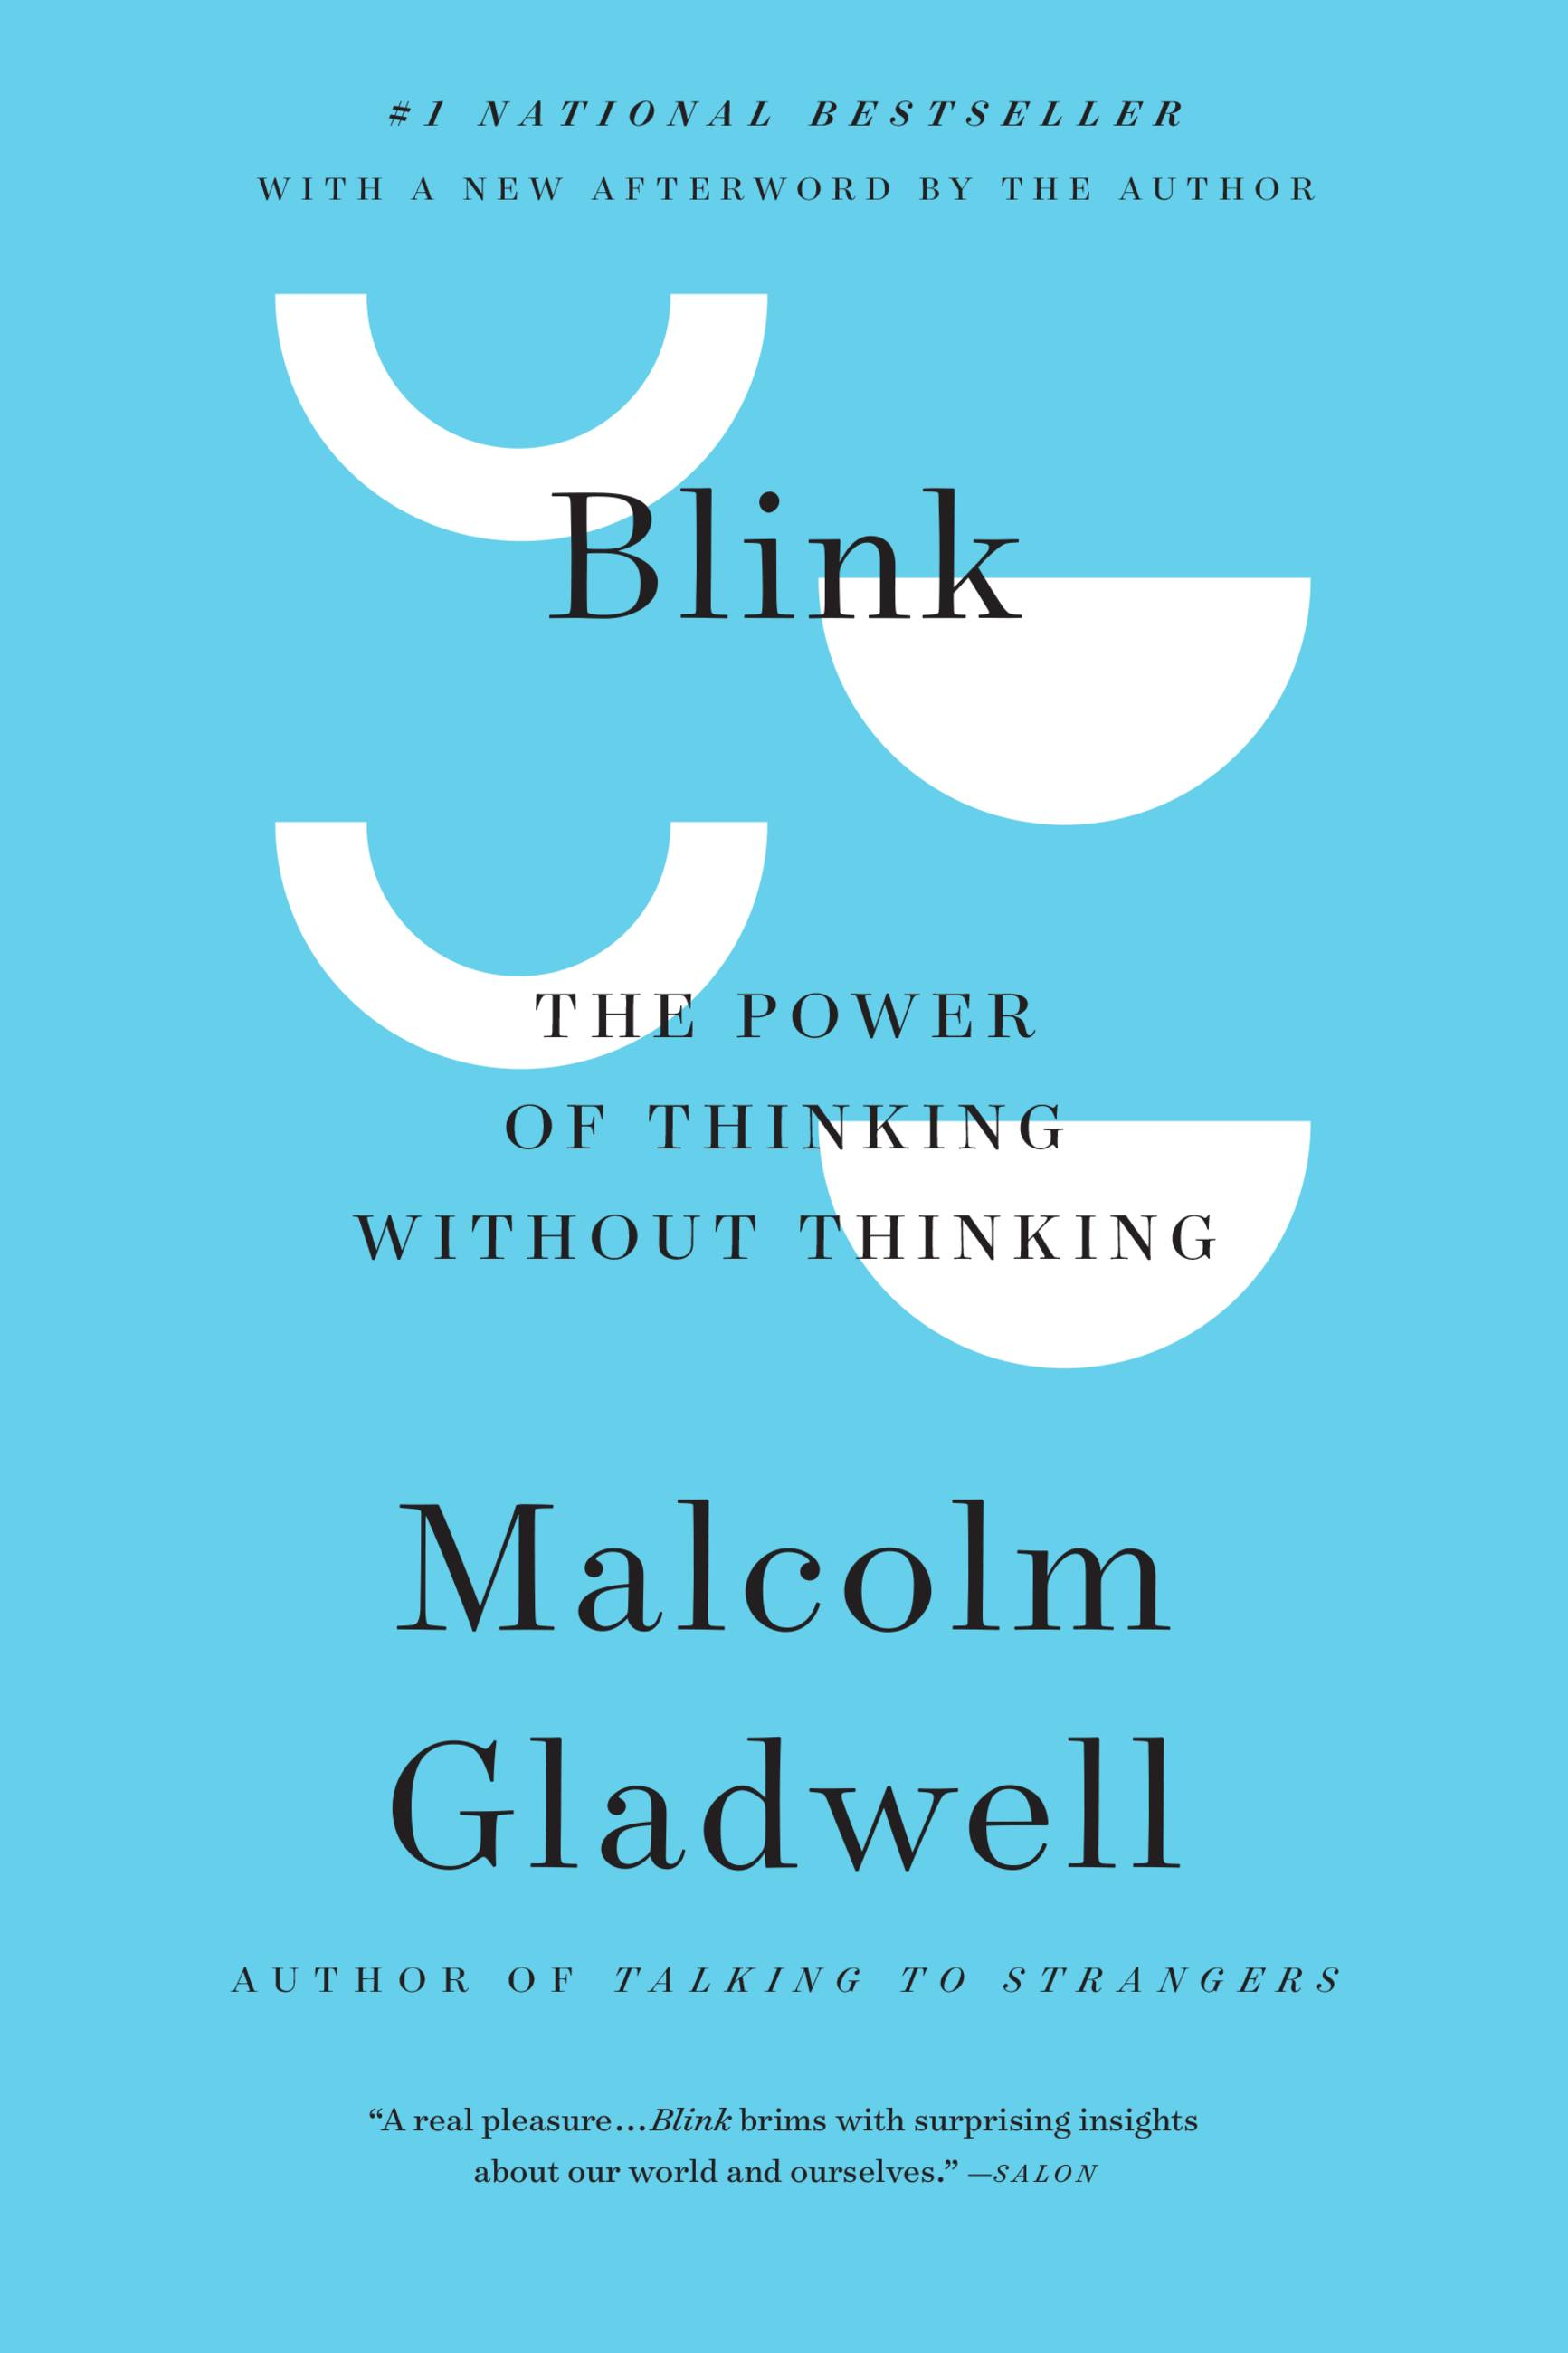 Download Ebook Blink by Malcolm Gladwell Pdf